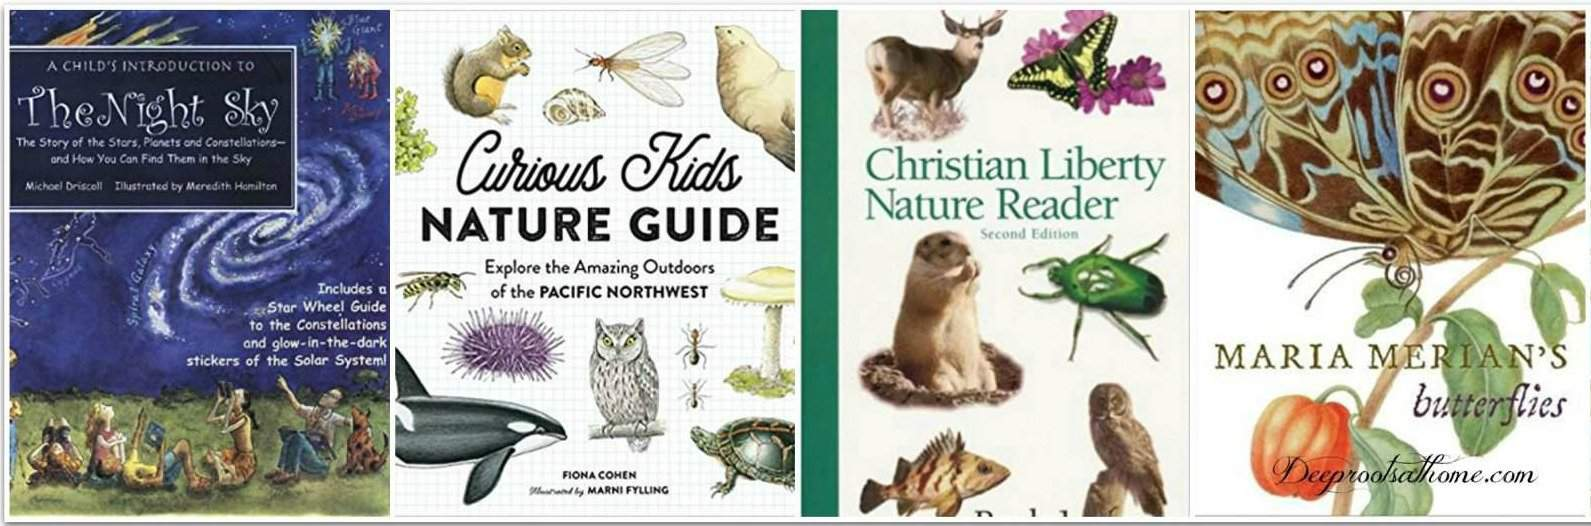 Raising Our Boys Through Nature Study & Enrichment. Nature books for teaching